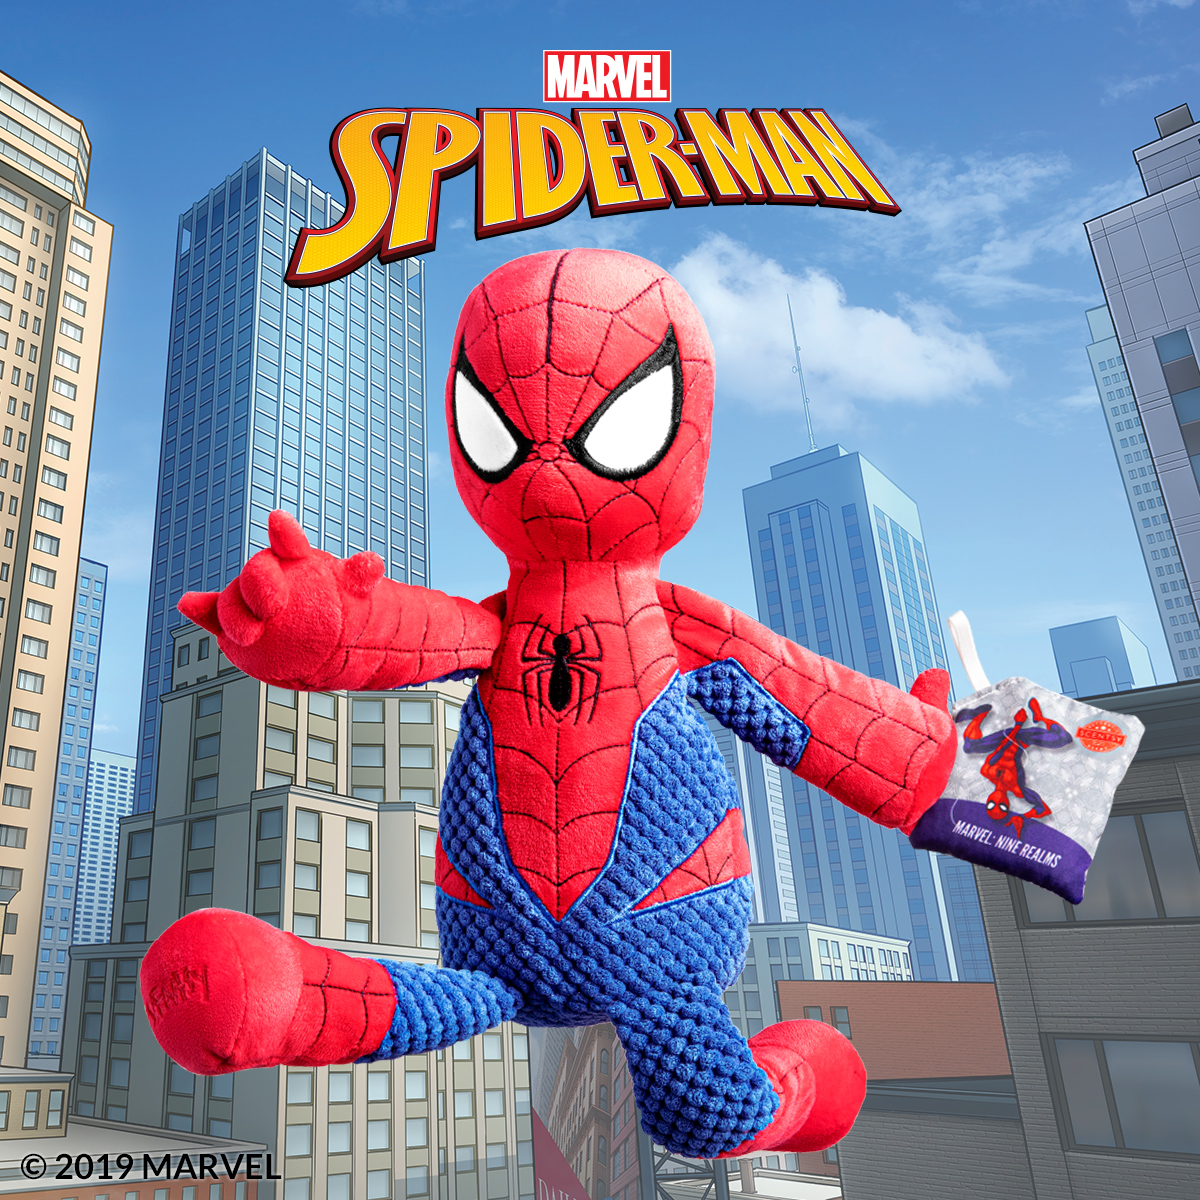 Scentsy Spiderman Marvel Products